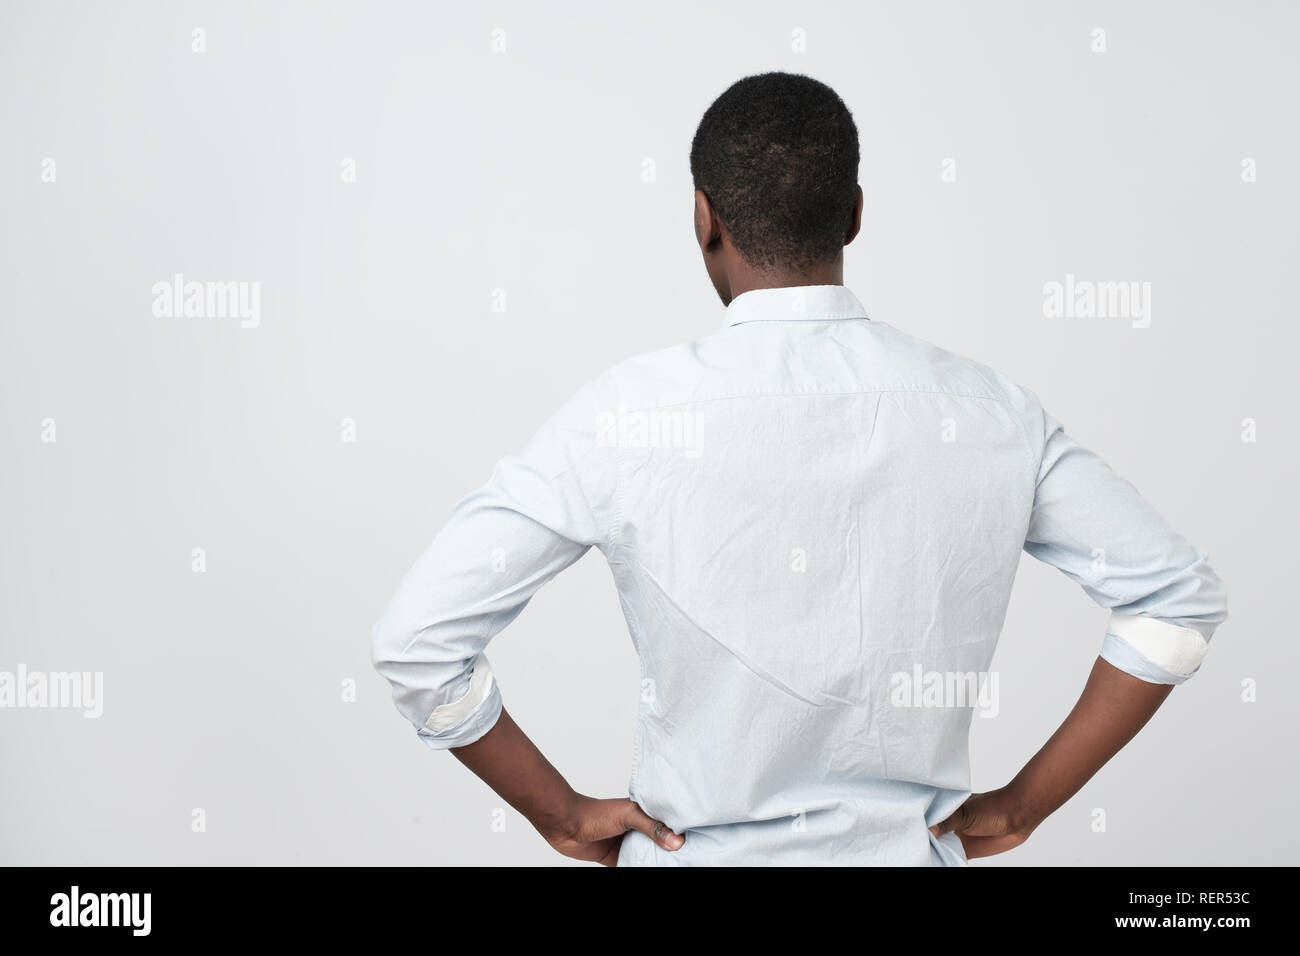 African american guy, in white shirt, turning back to the camera as he is offended. Stock Photo